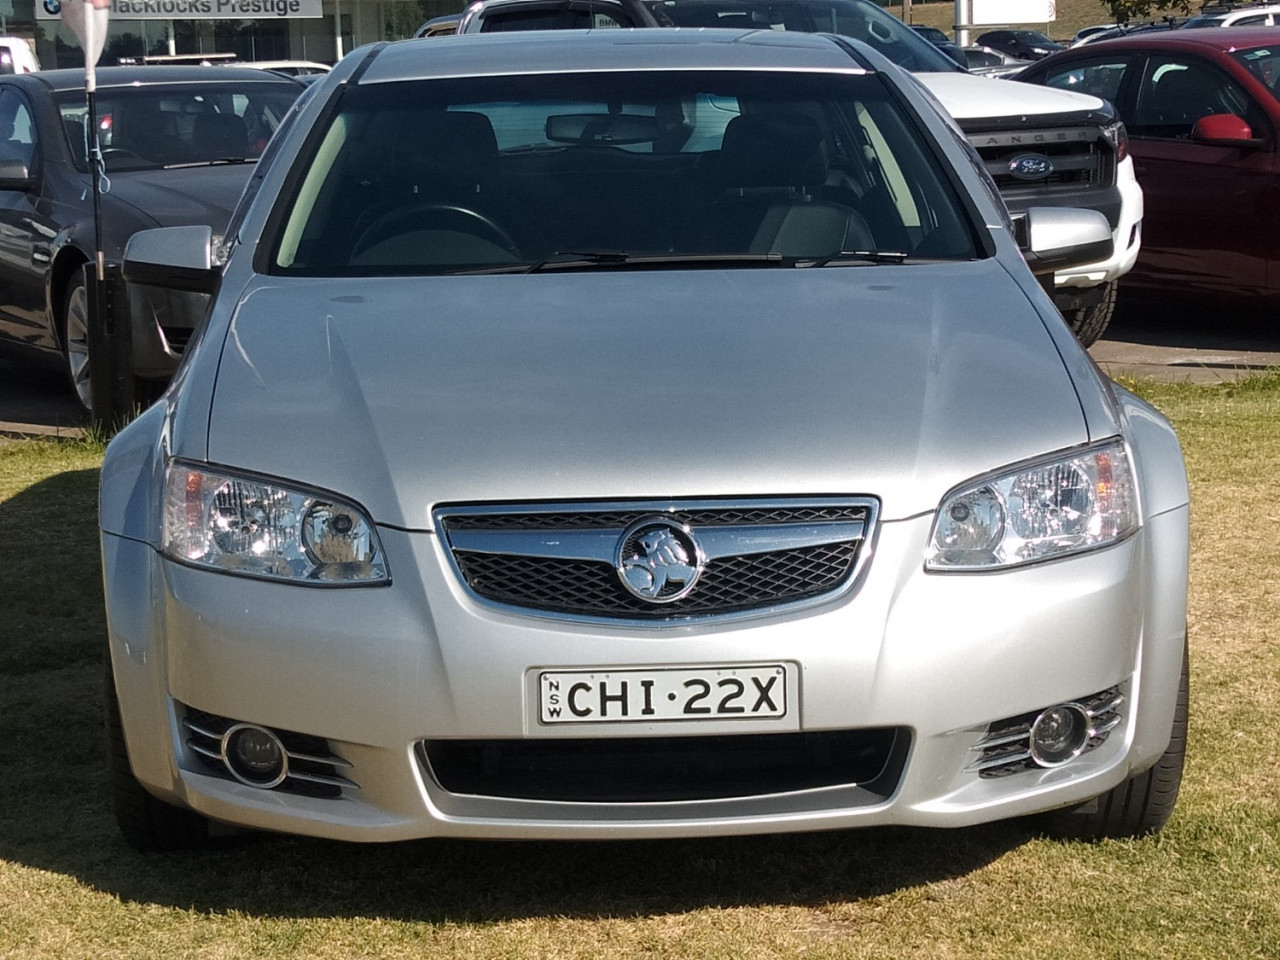 2012 Holden Berlina VE II MY12 Wagon Image 2